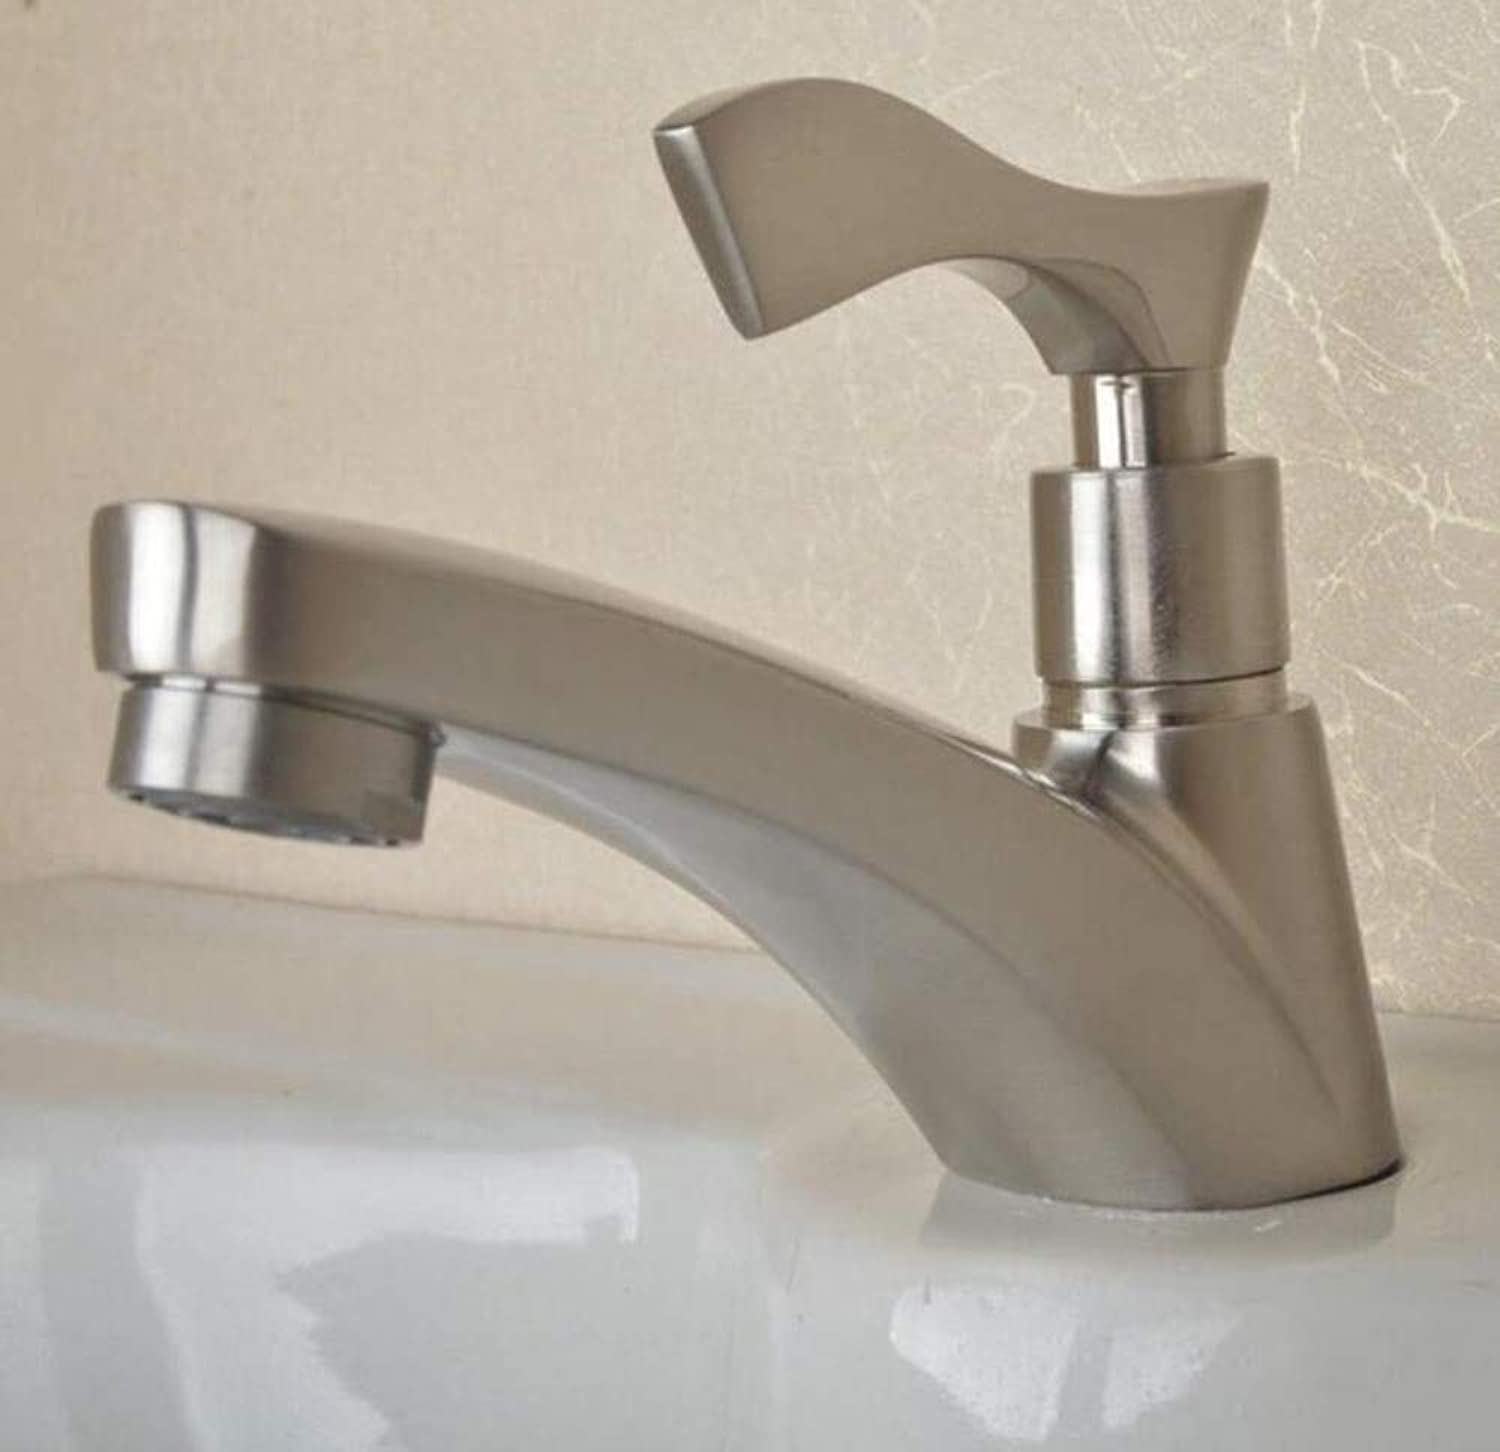 Brass Wall Faucet Chrome Brass Faucet Nickel Single Cold Basin Faucet Bathroom Wash Basin Tap